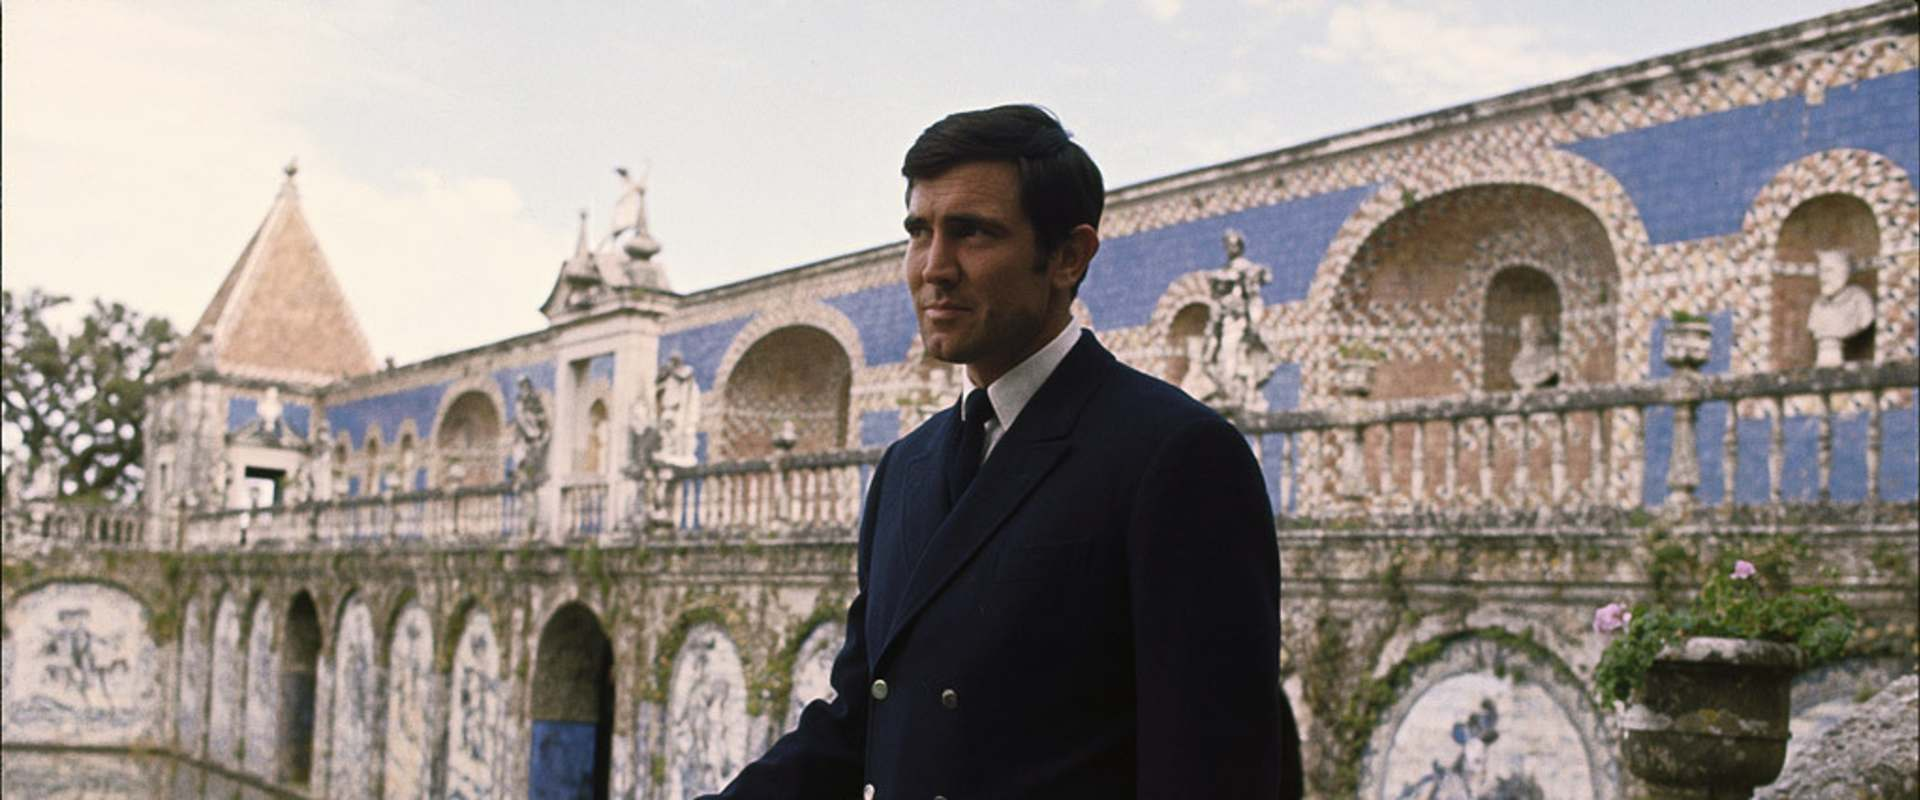 On Her Majesty's Secret Service background 1